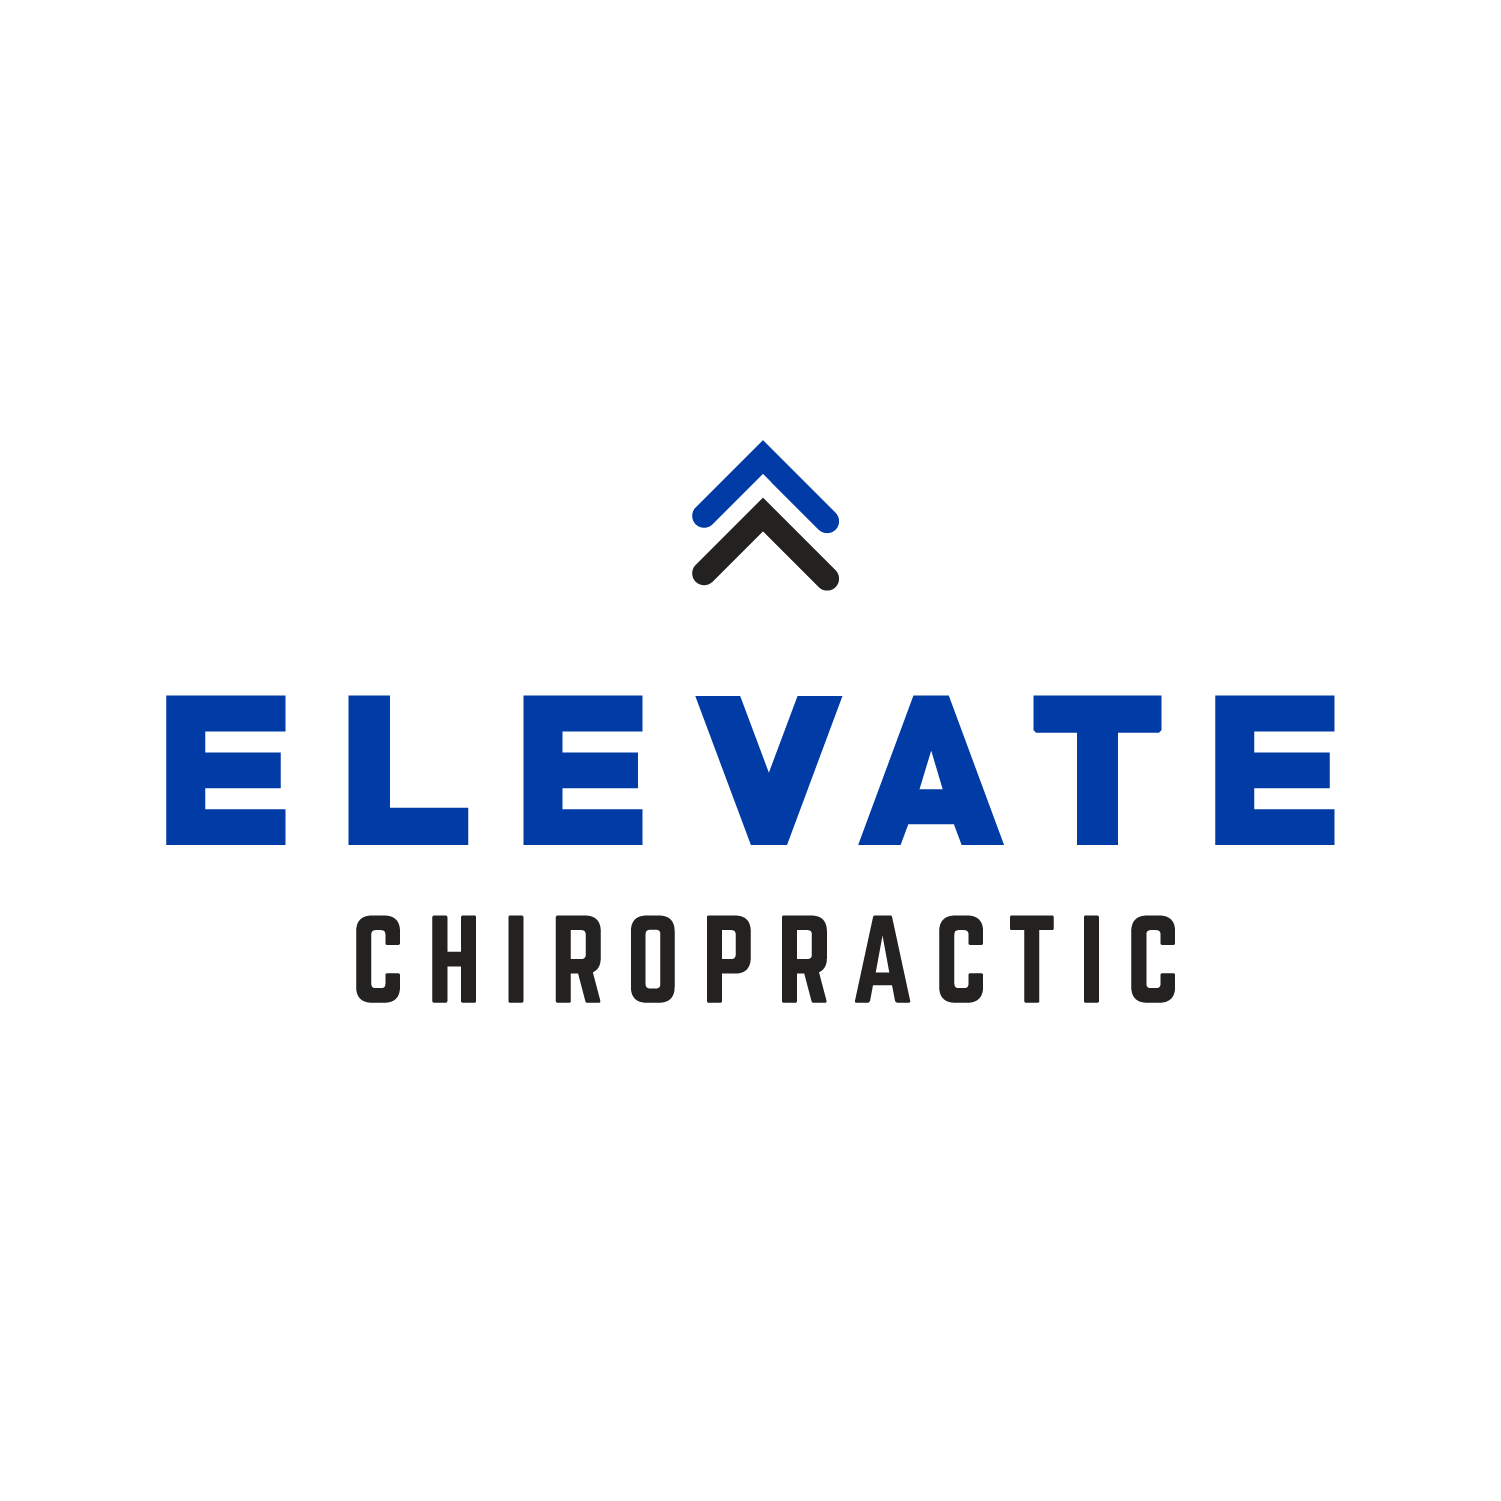 Elevate-01.png